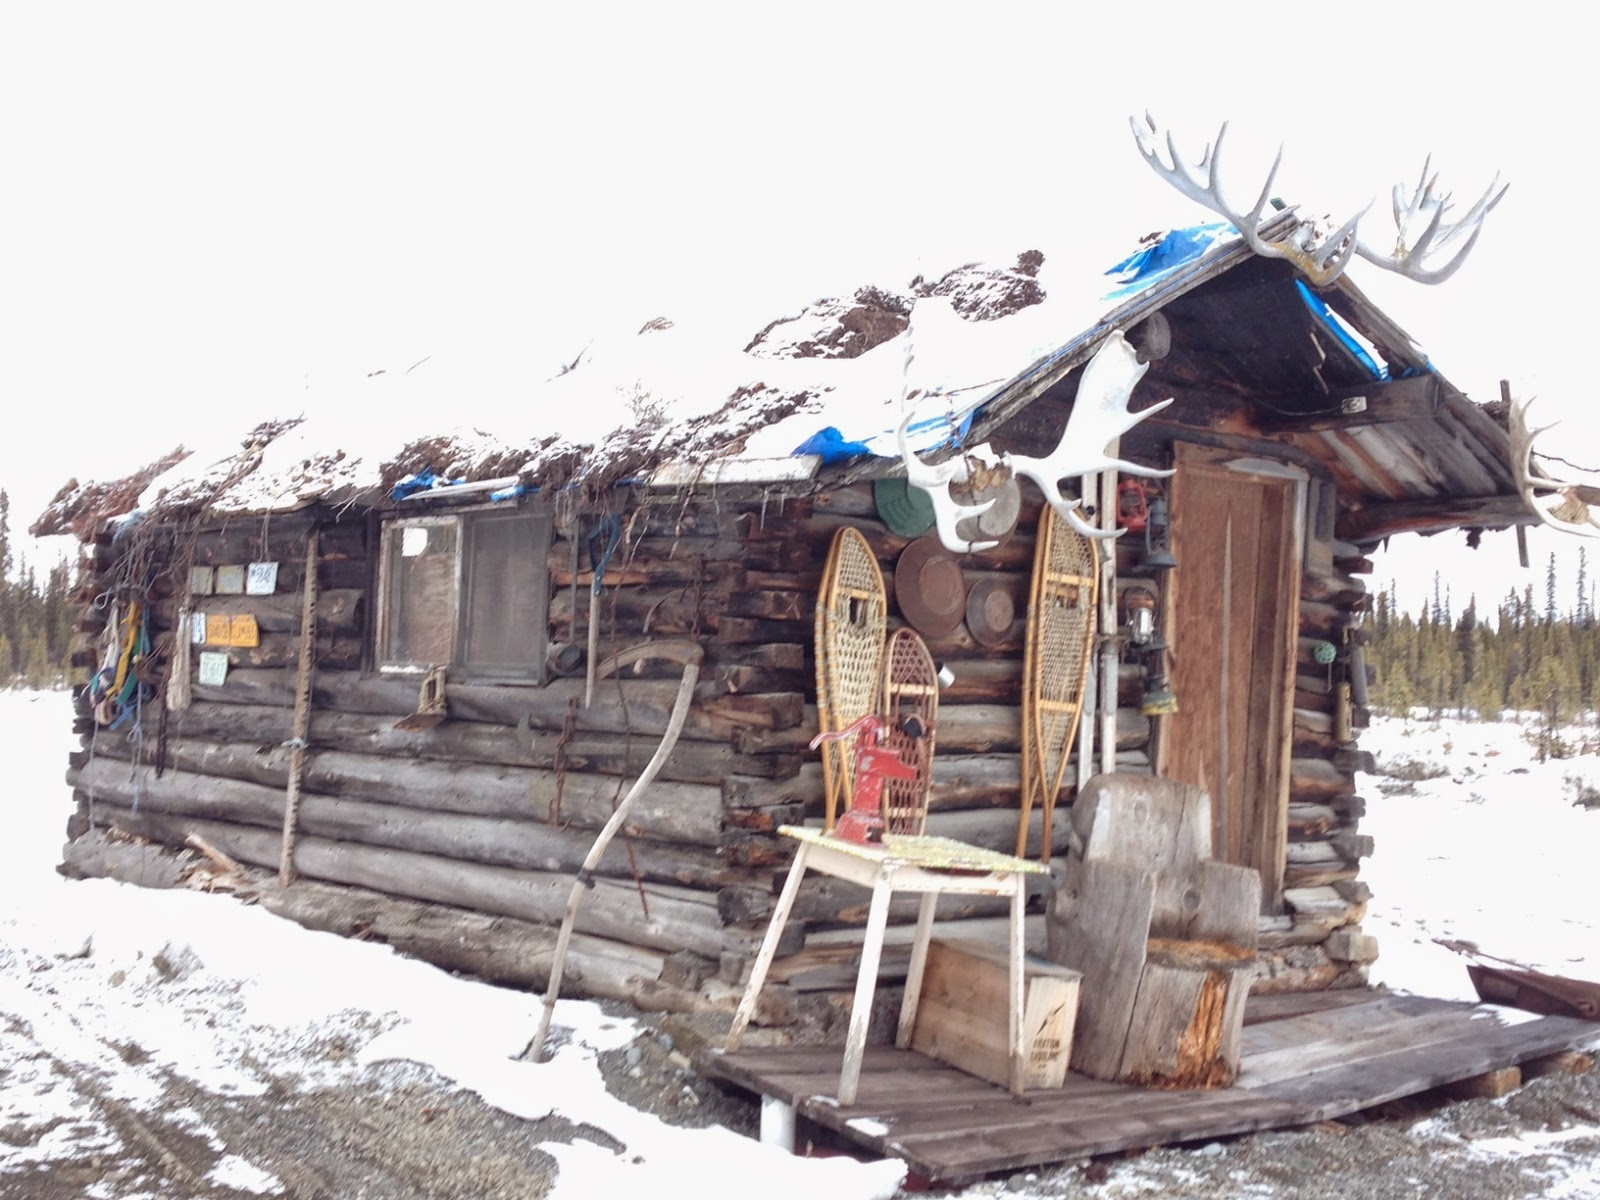 When the larger, original lodge, burned down, this Tolsona cabin remained.